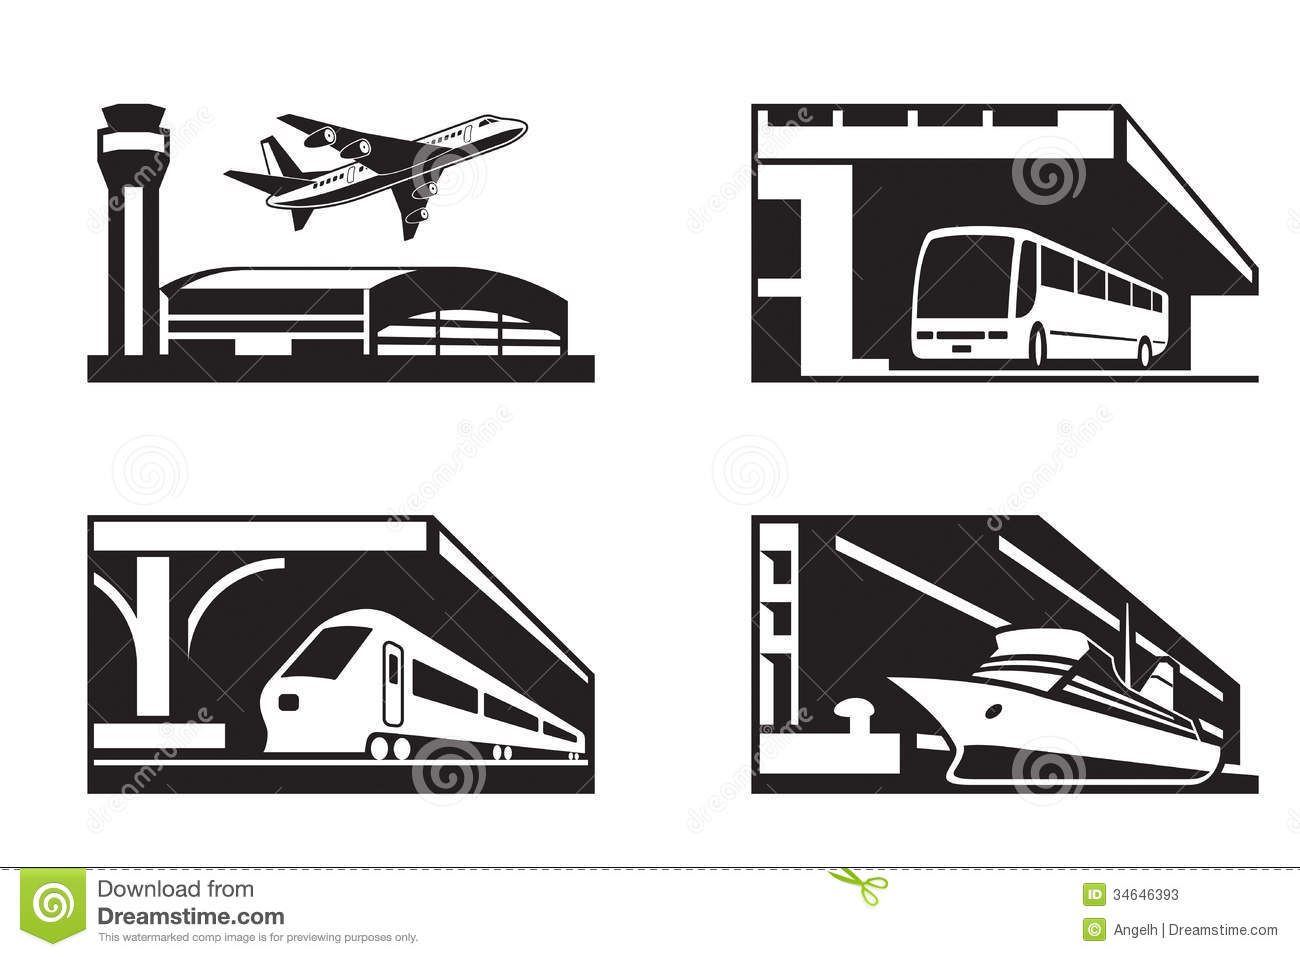 DWUT08 in addition Driver Delivery Jobs Occupations 16804621 additionally Stock Illustration Fixing Car Breakdown Broke Down Repair Roadside Clipart Set Human Pictogram Representing Situation Where Woman Clueless Image62632043 together with Seamless Vector School And Education Background Gm610850338 104968775 furthermore Ac Motor Speed Control. on bus illustration